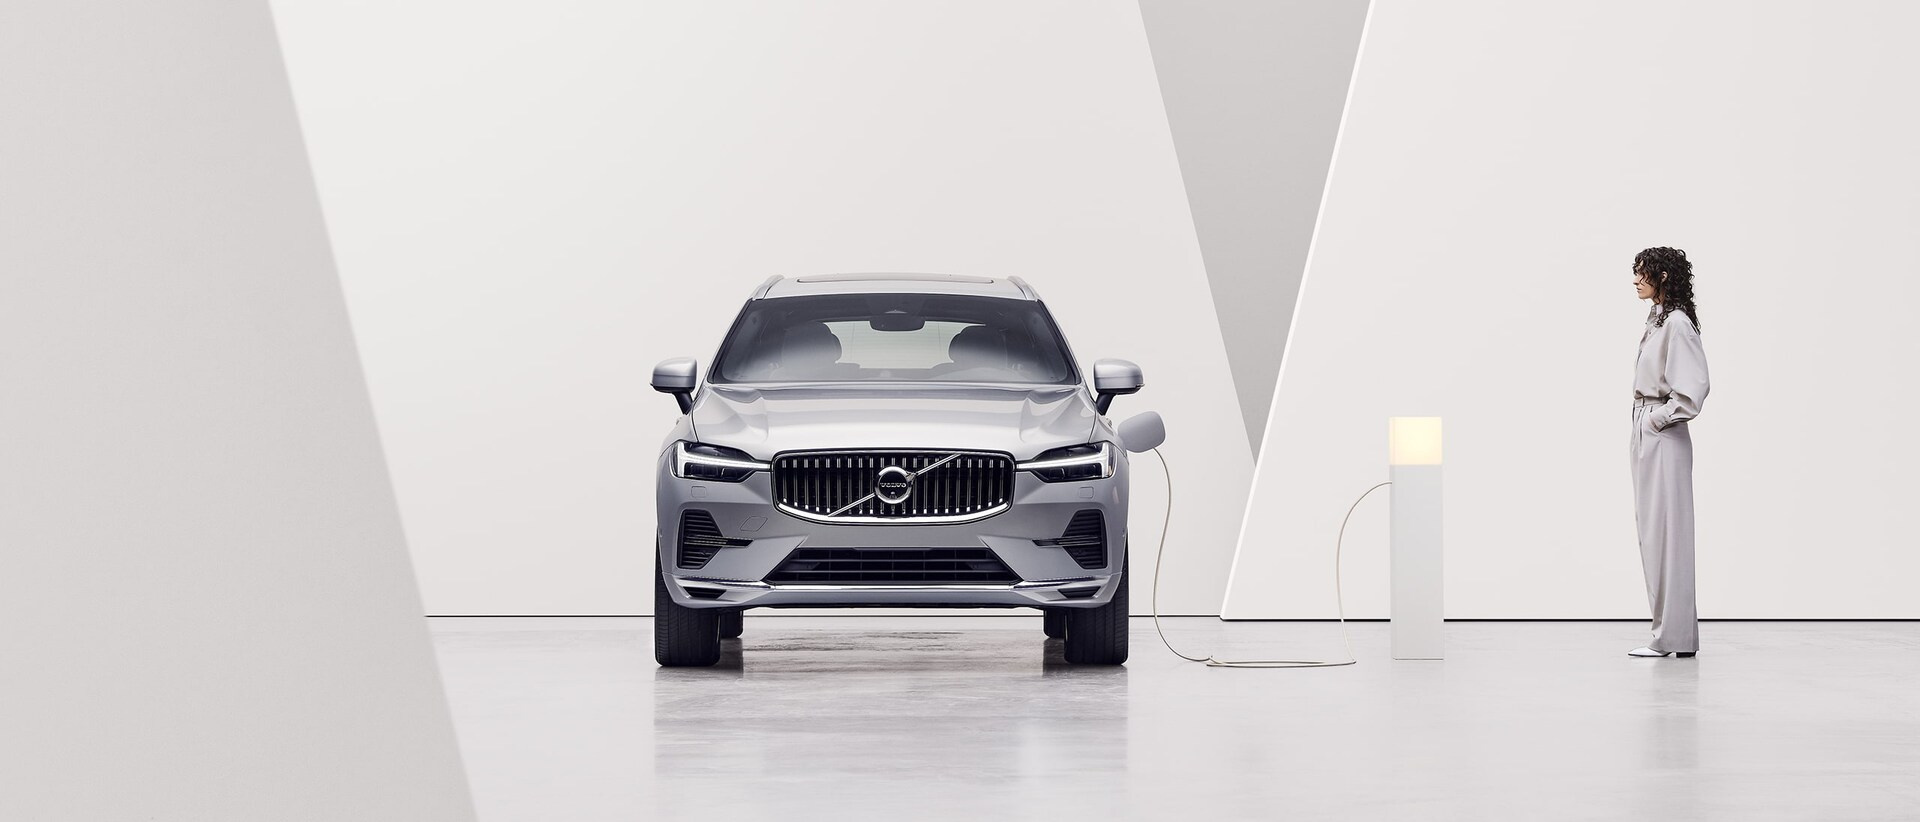 xc60-recharge-gallery-1-21x9_1